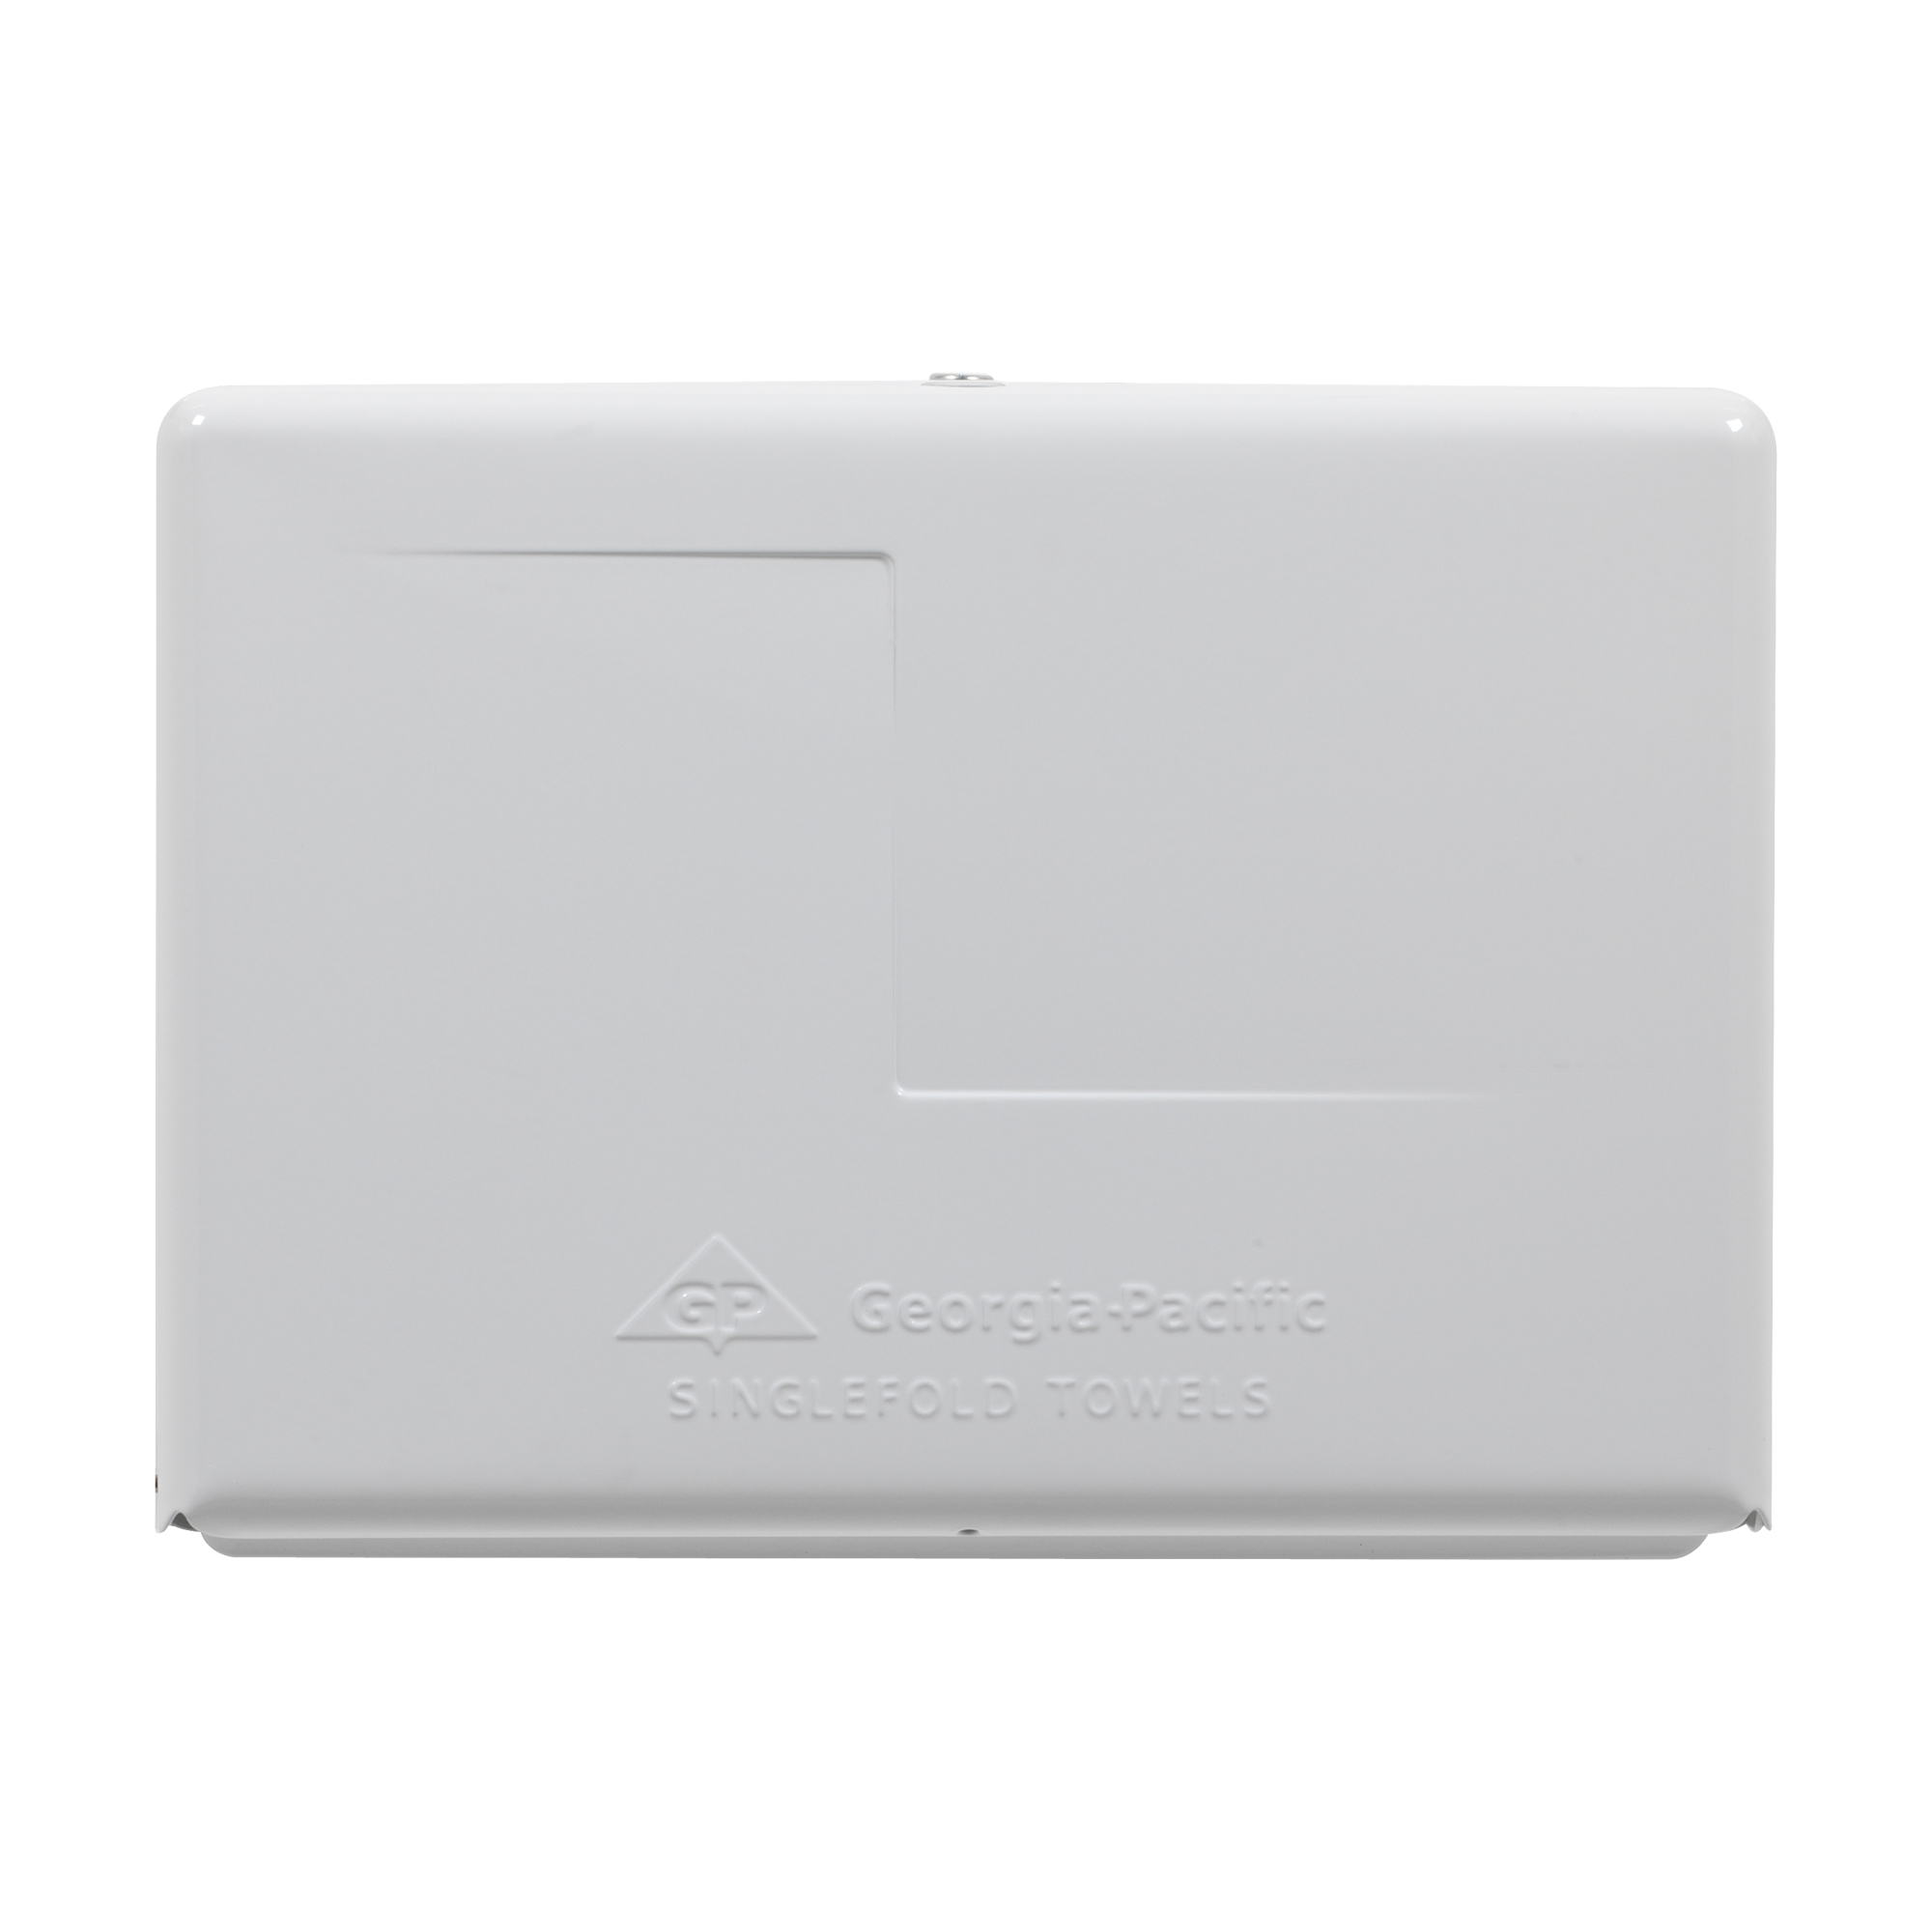 00073310567013 Georgia-Pacific® Singlefold Towel Dispenser